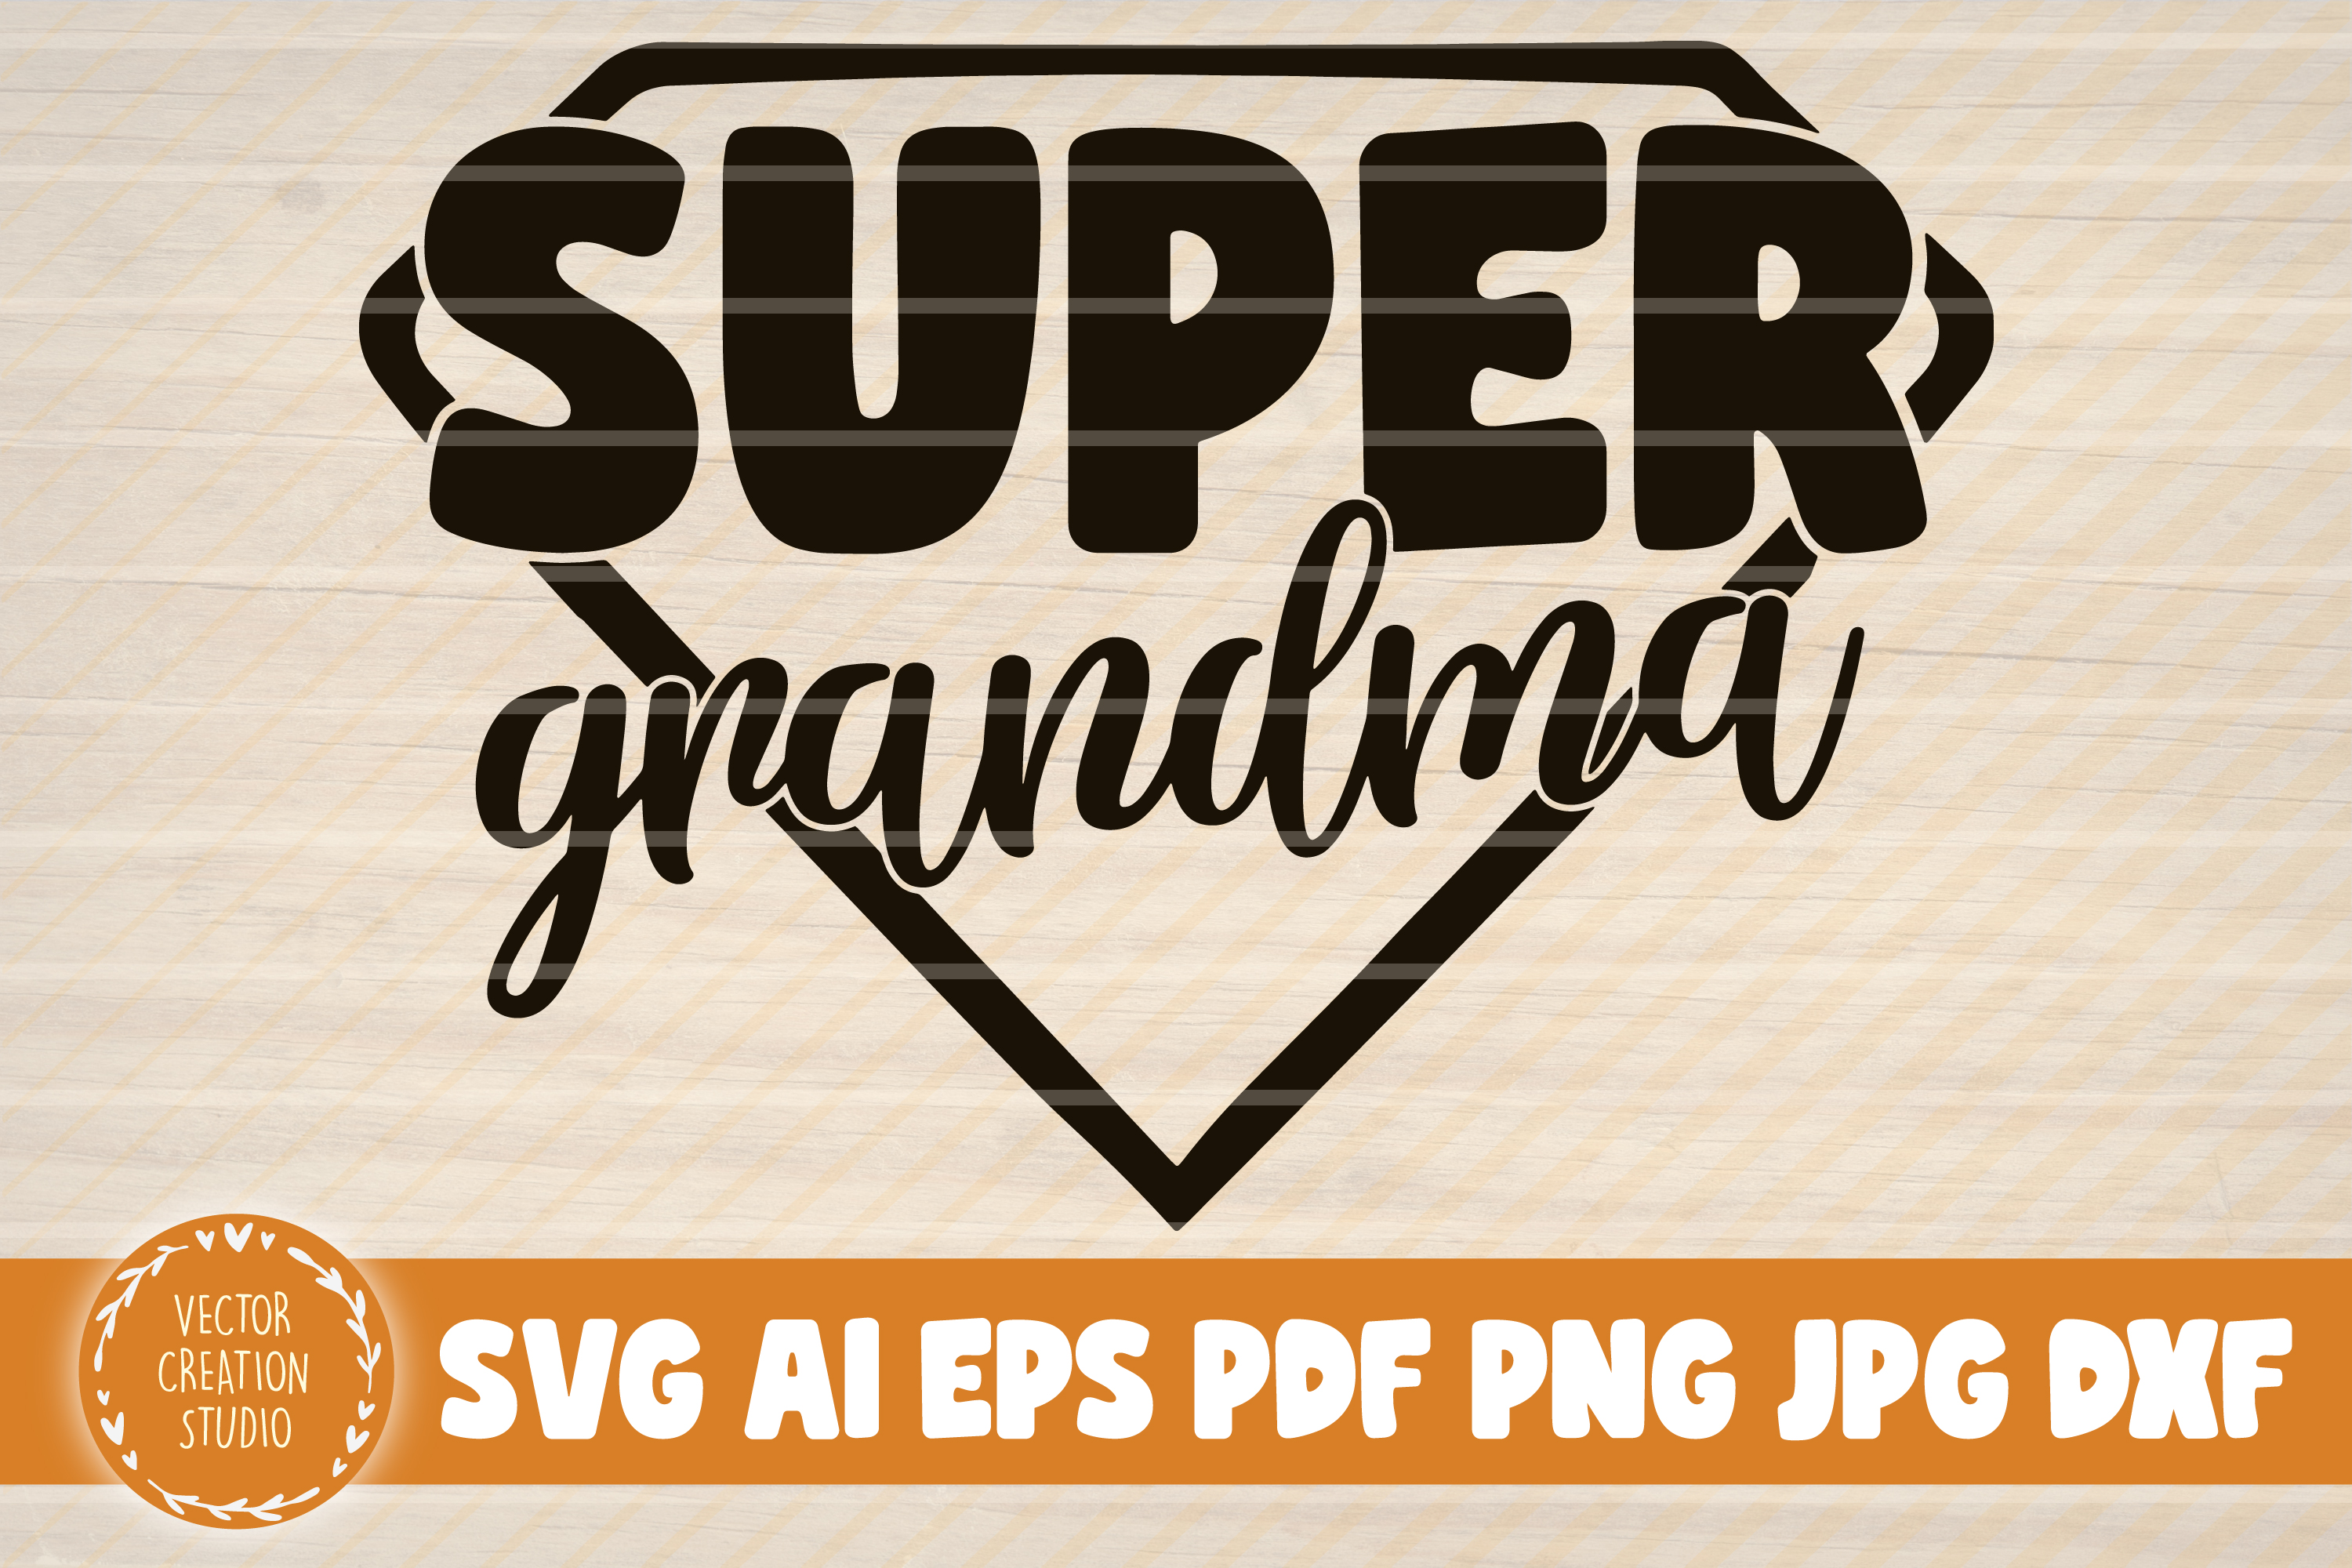 Grandma Sayings Svg Free Svg Cut Files Create Your Diy Projects Using Your Cricut Explore Silhouette And More The Free Cut Files Include Svg Dxf Eps And Png Files